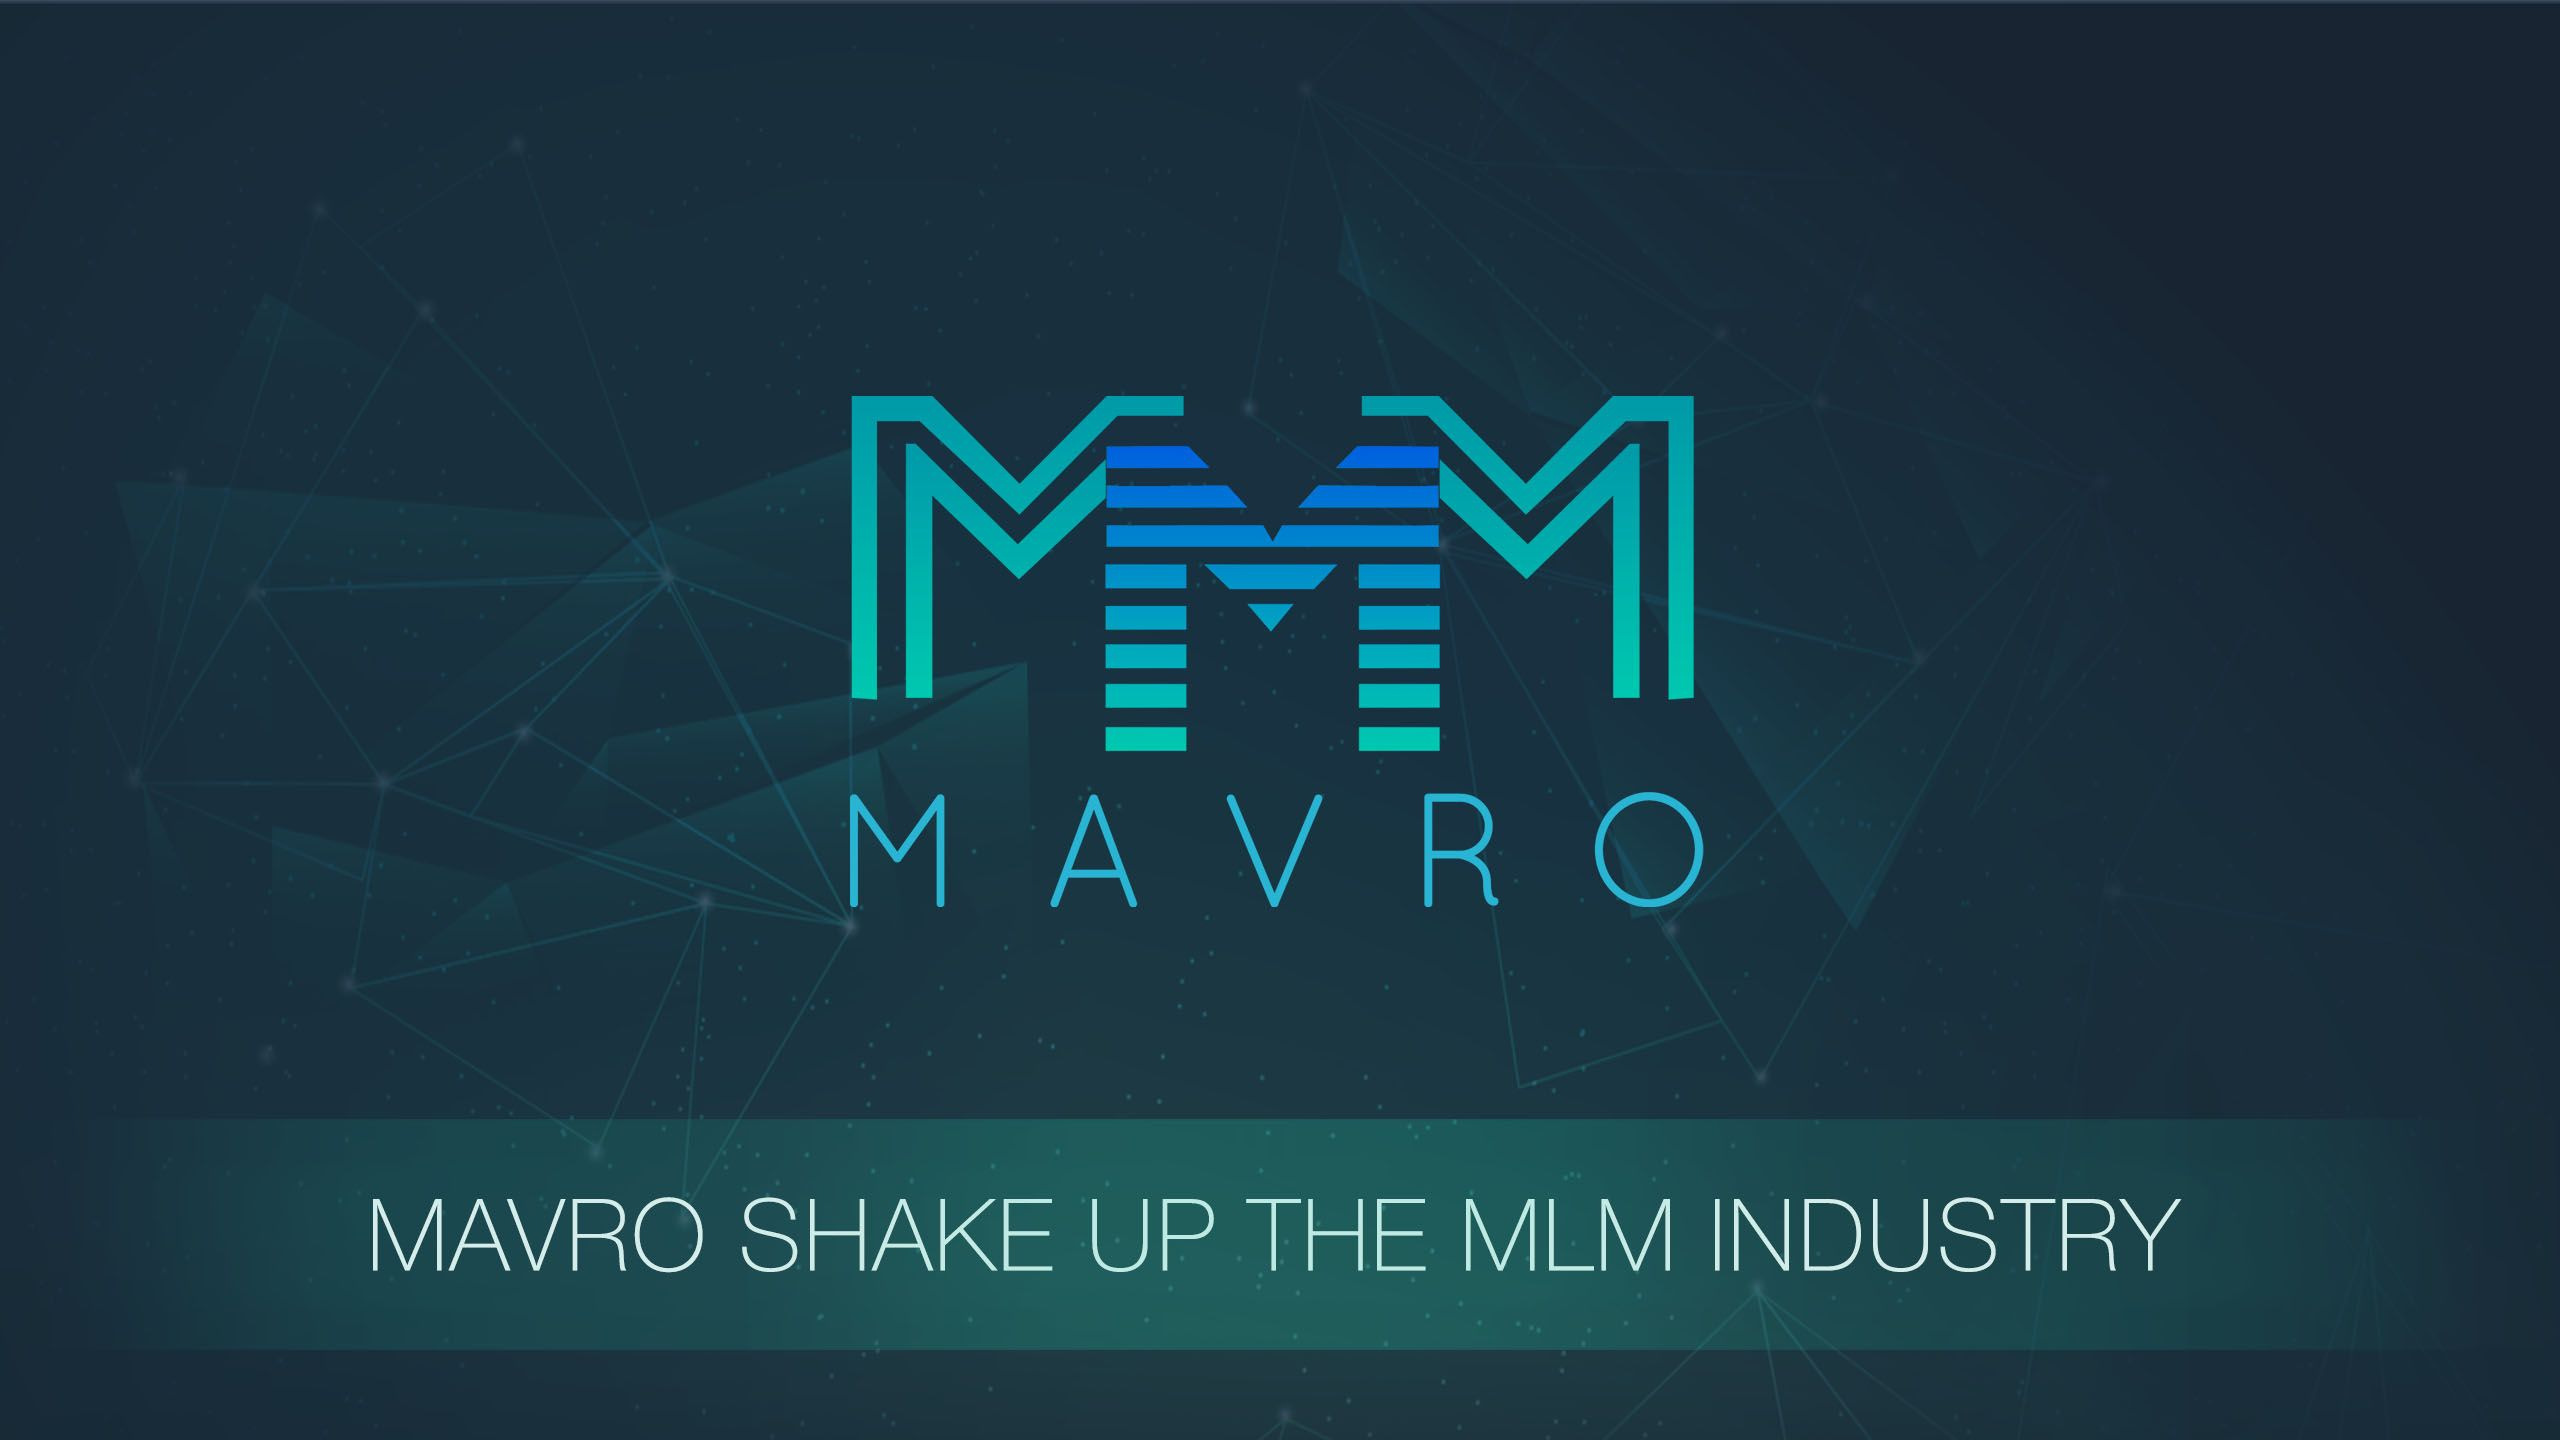 MAVRO SHAKE UP THE MLM INDUSTRY.jpg